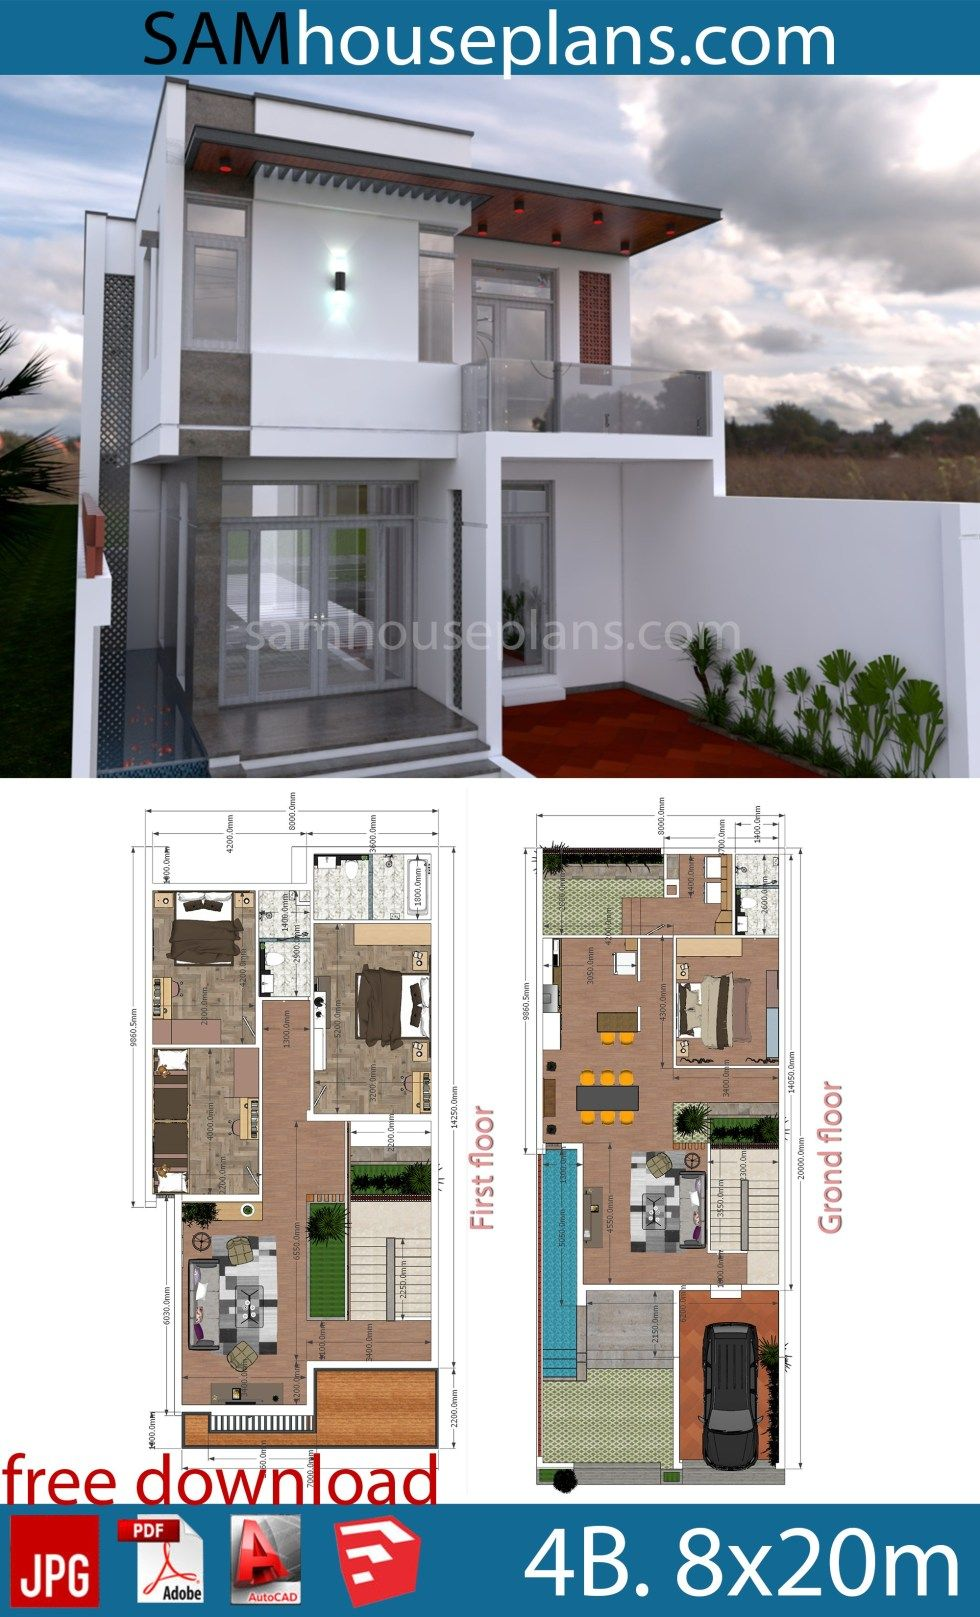 House Plans 8x20m With Full Plan 4beds Sam House Plans House Construction Plan Sims House Plans Indian House Plans